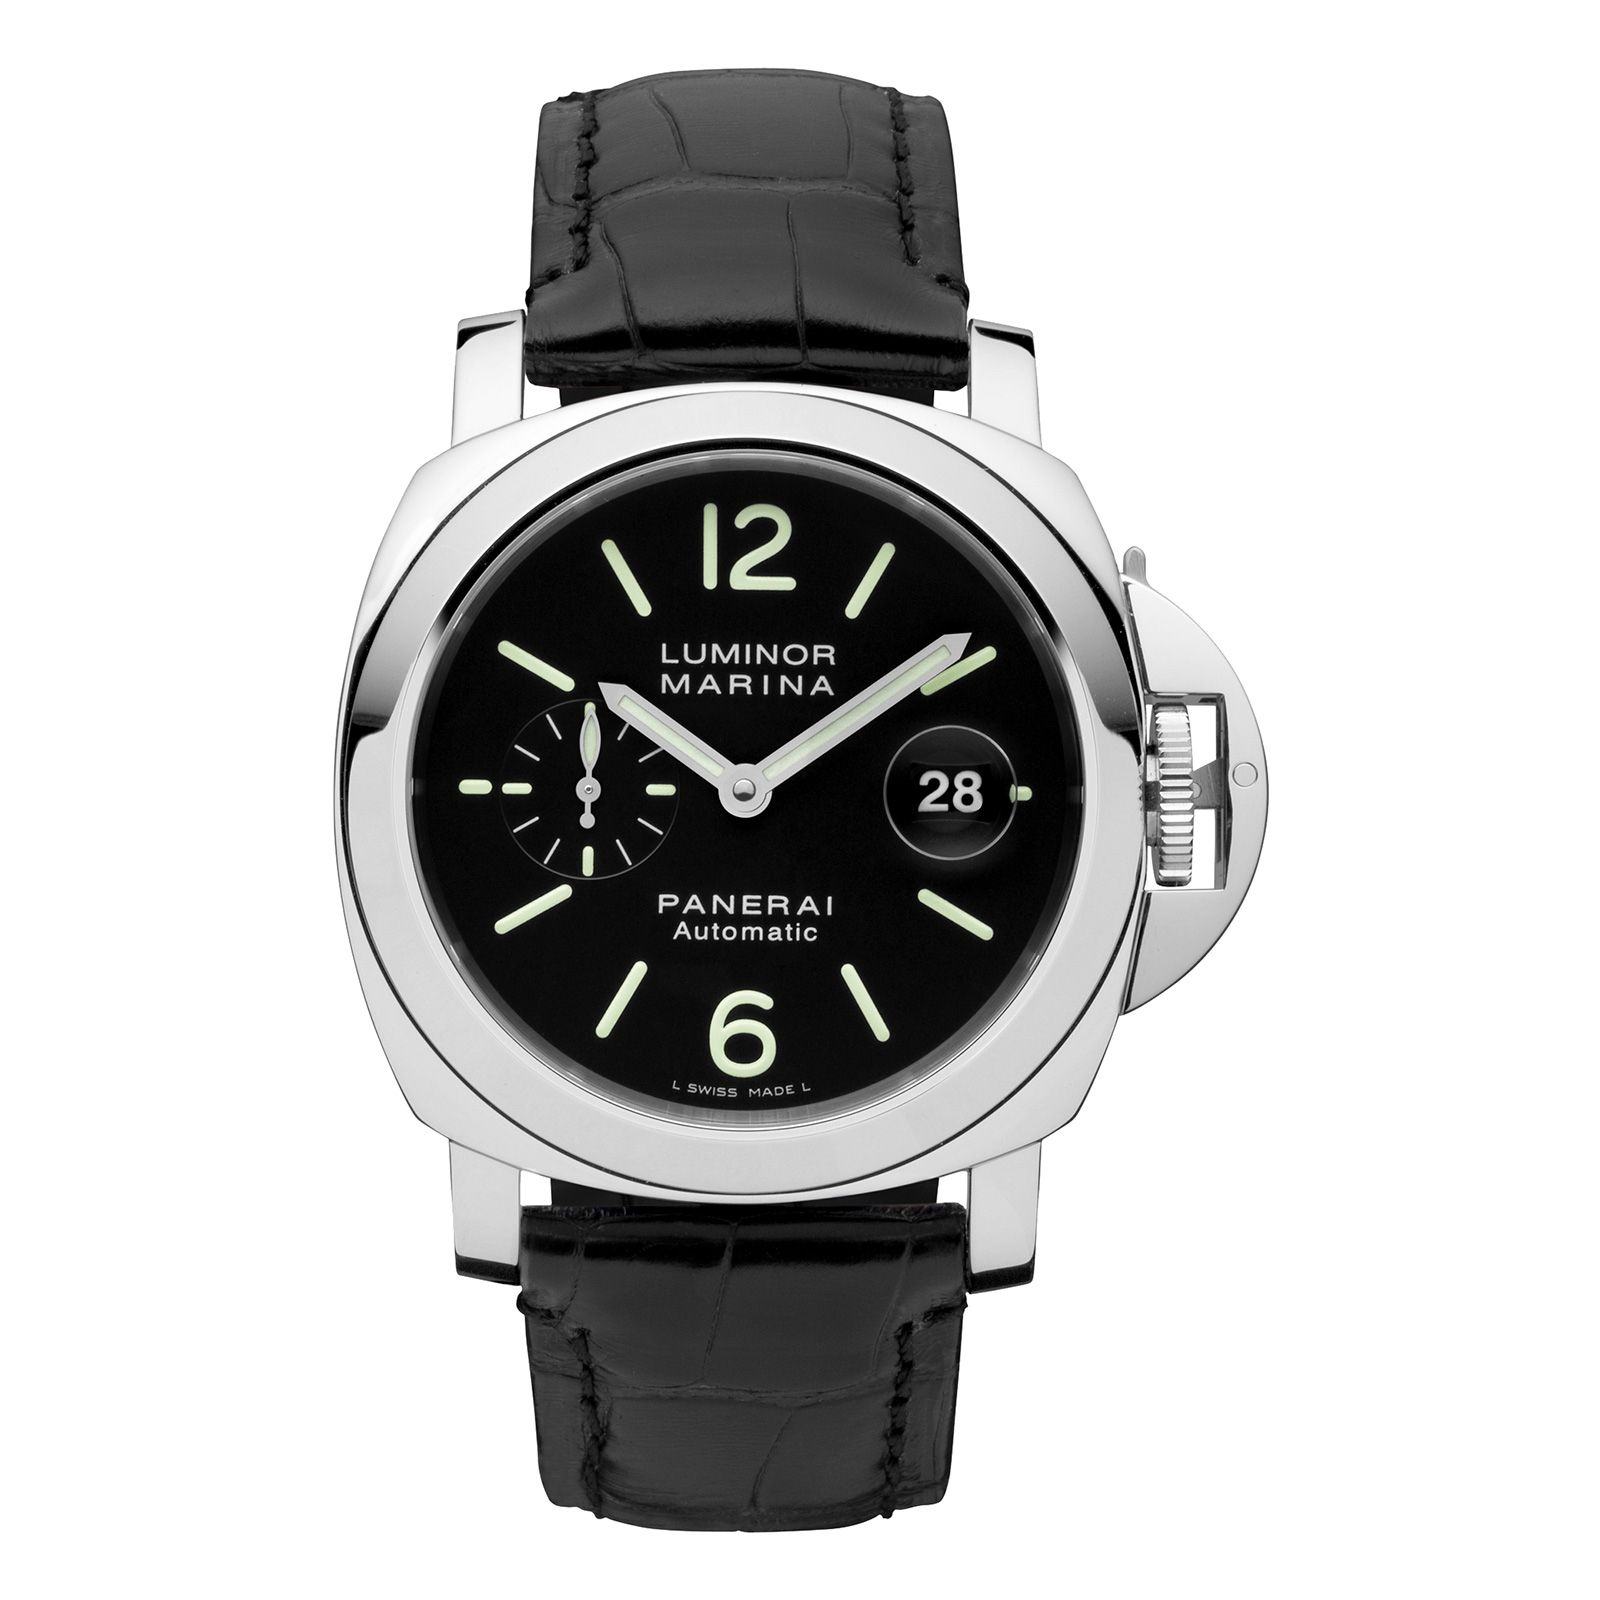 Panerai_Luminor.jpg